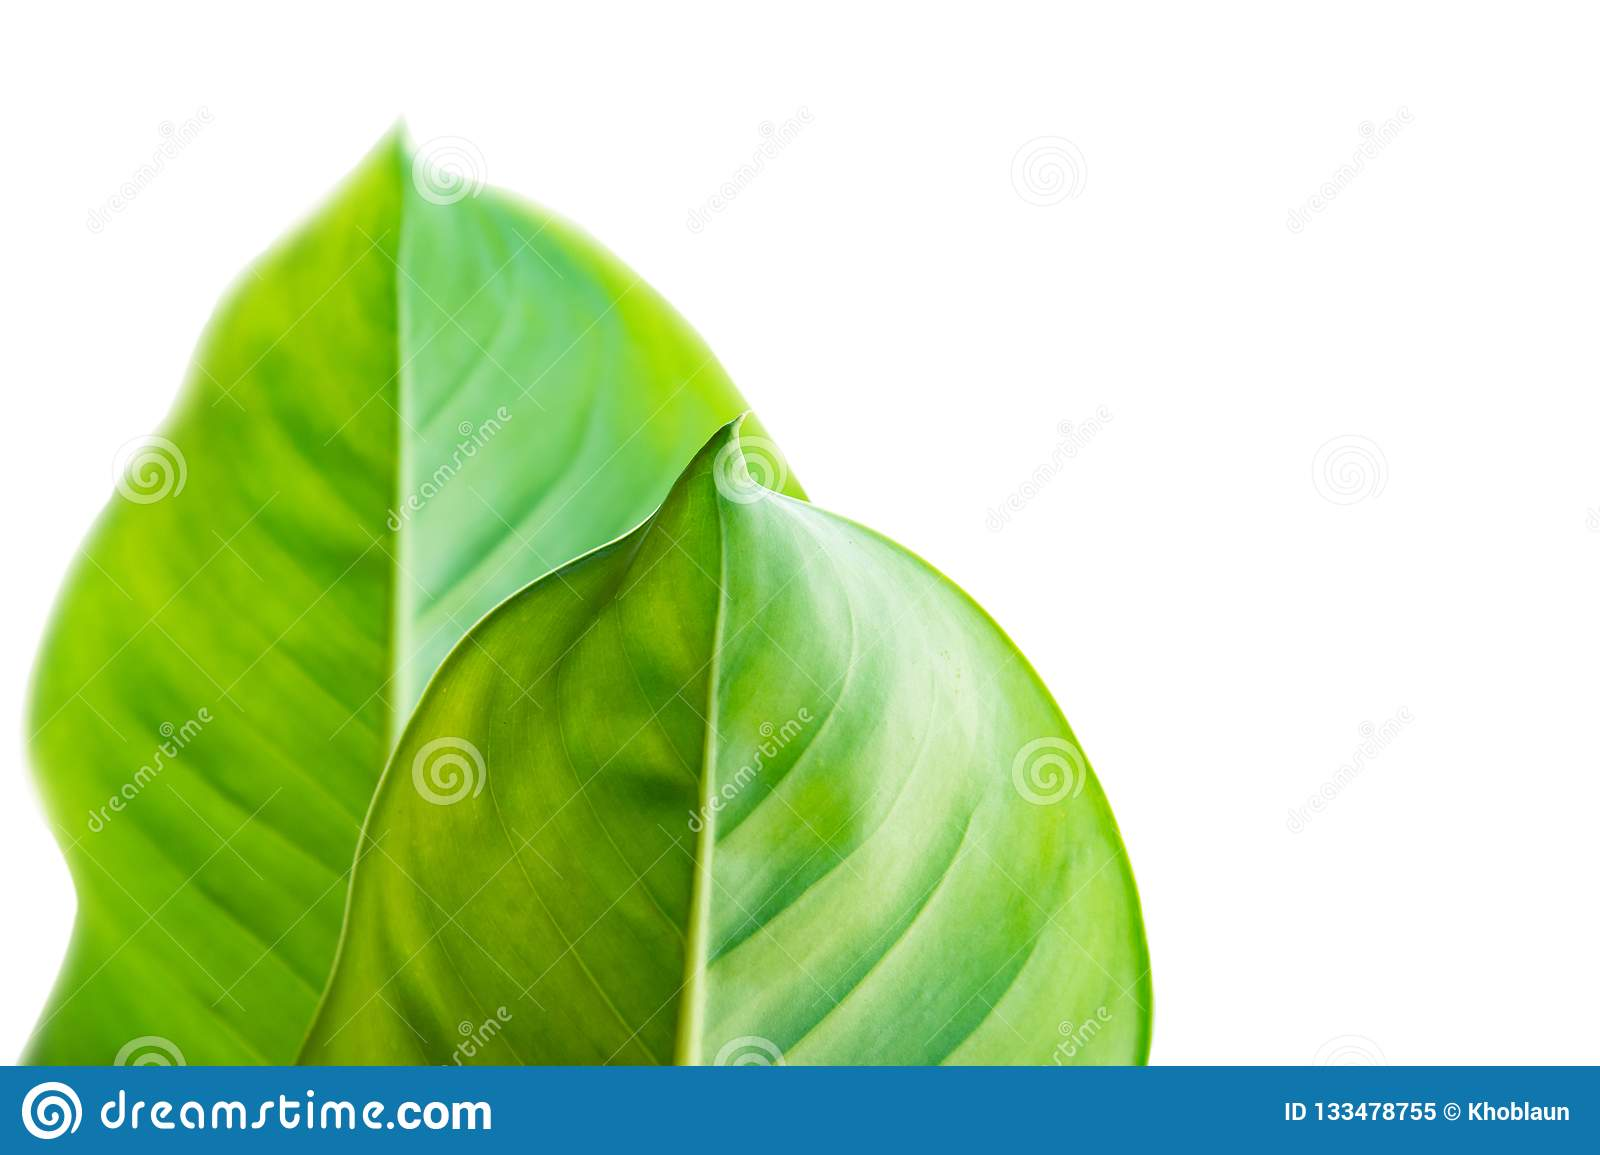 Calathea foliage, Exotic tropical leaf, Large green leaf, Dieffenbachia leaf, isolated on white background with clipping path.